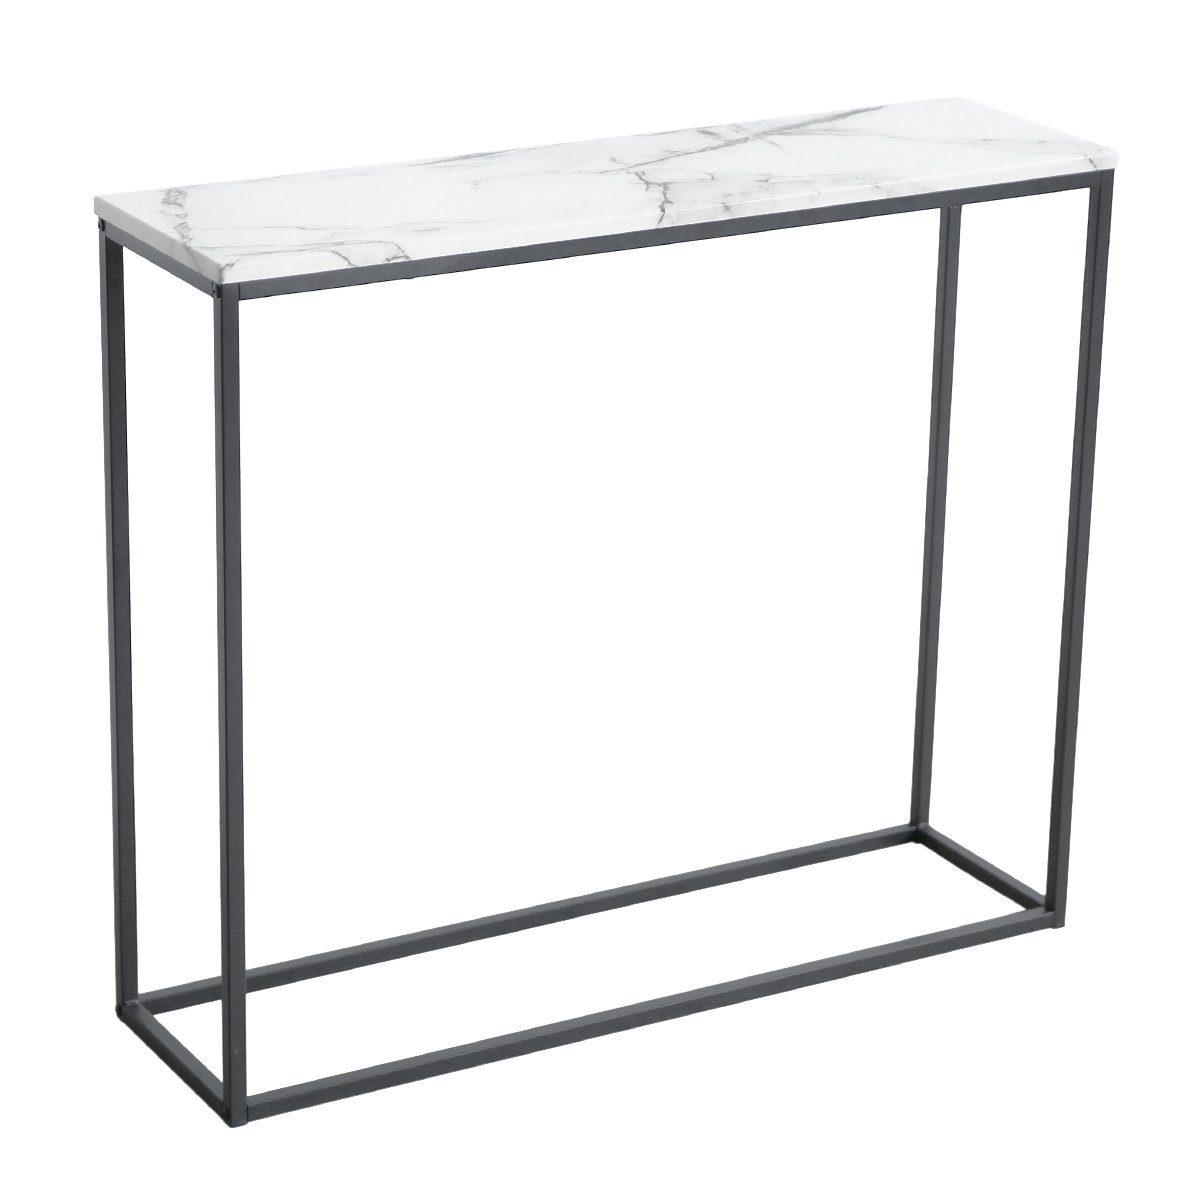 roomfitters sofa console table marble print top metal room essentials accent instructions frame white narrow foyer hall kitchen dining pool umbrella stand pallet sheesham